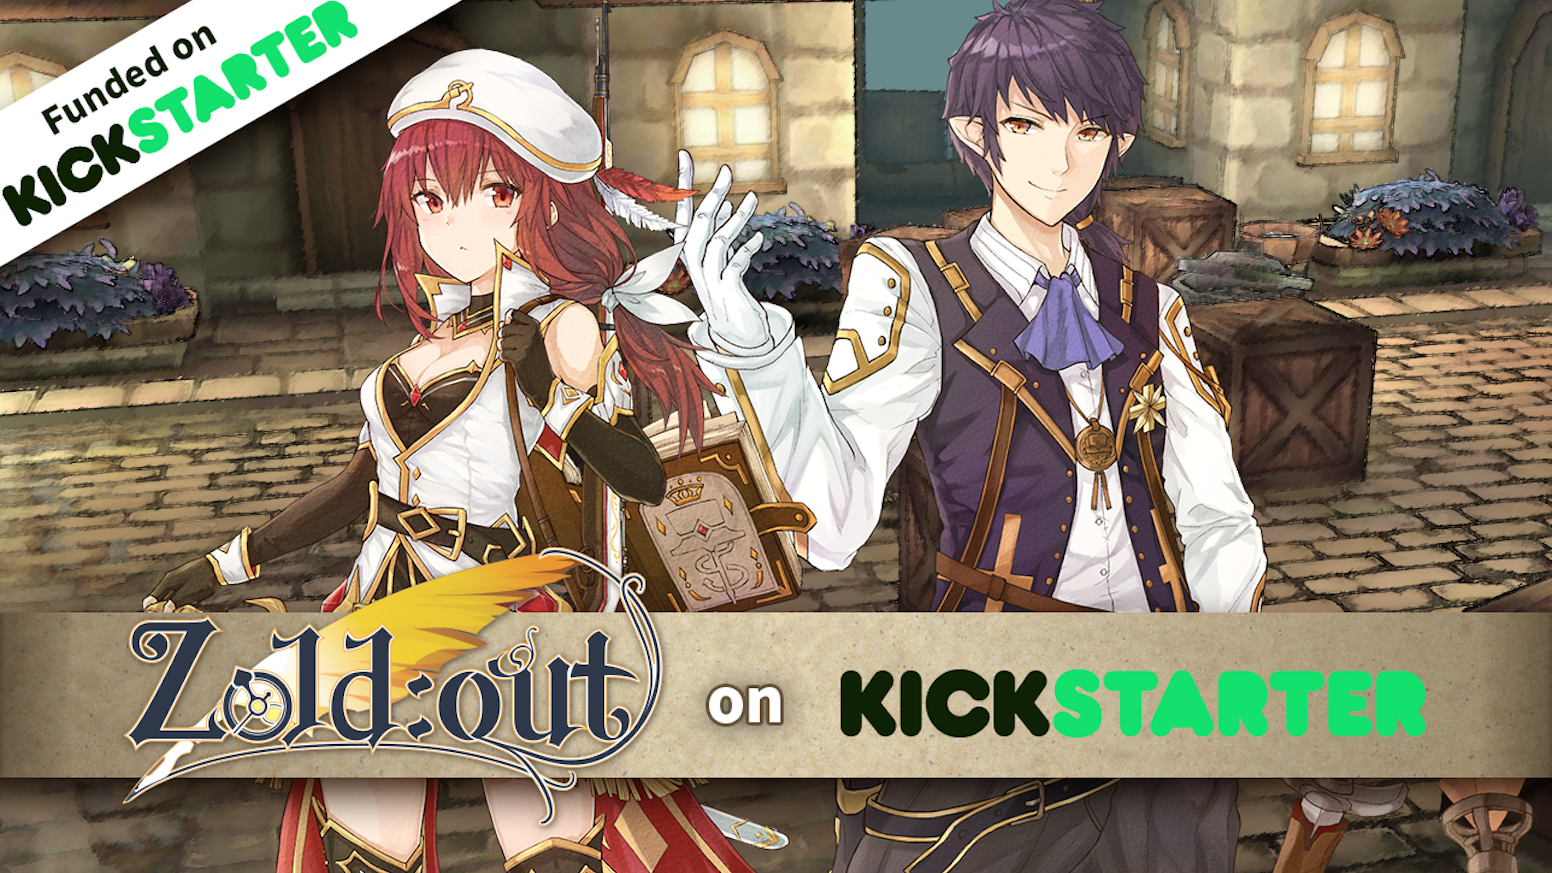 Zoldout Is An Anime Style Tactical RPG With New Stylish Gameplay Come To